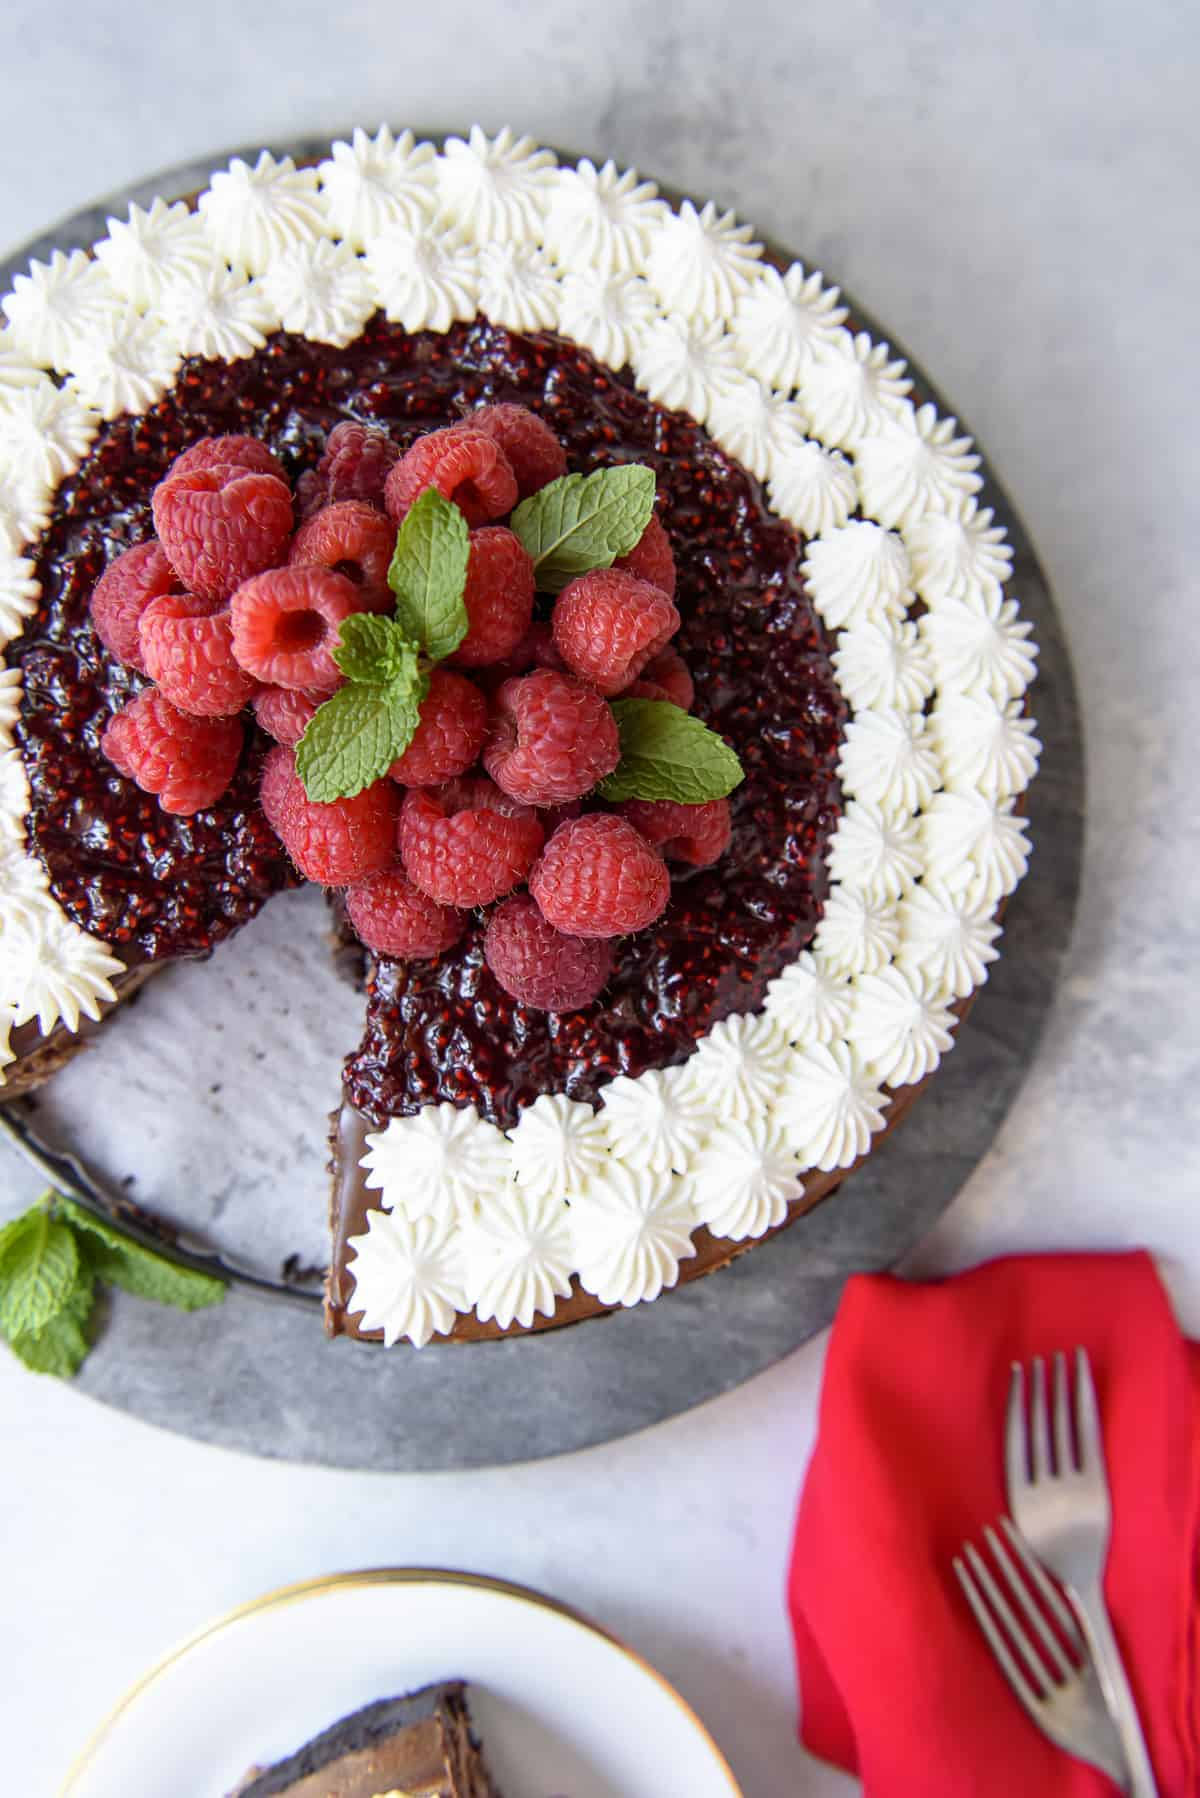 Raspberry Chocolate Cheesecake #BrunchWeek